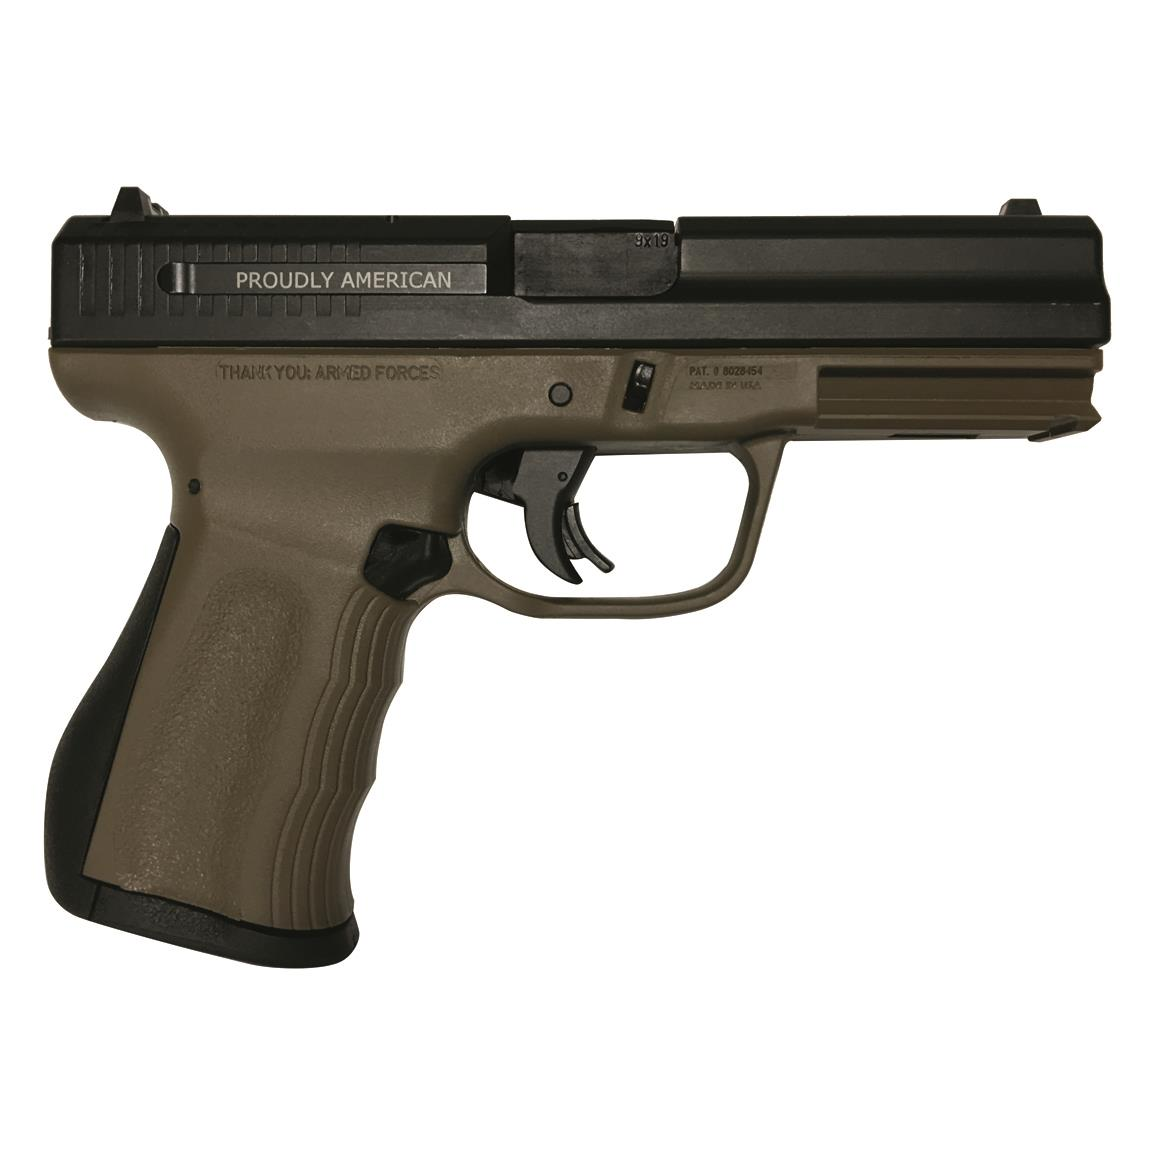 "FMK Firearms 9C1 G2 Compact FAT, Semi-Automatic, 9mm, 4"" Barrel, Burnt Bronze, 14+1 Rounds"